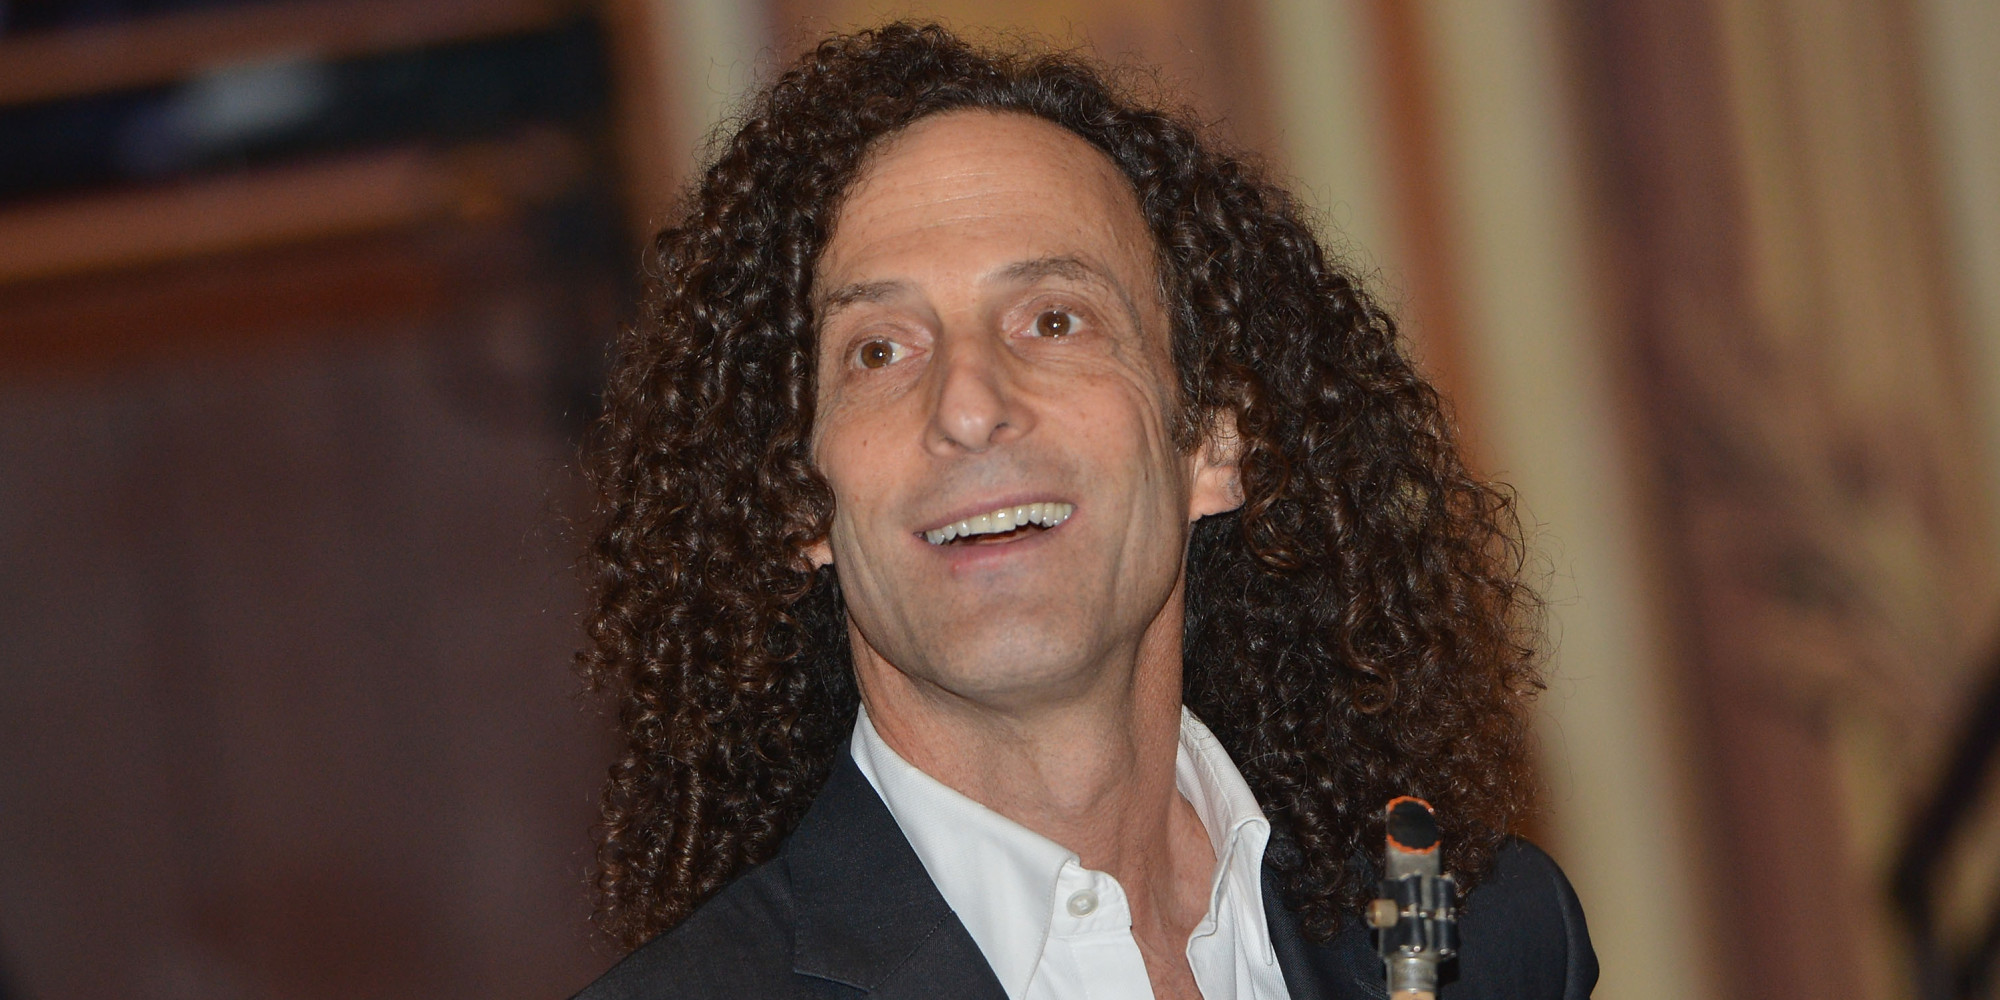 China Plays Kenny G's 'Going Home' On Loop Every Single Day At Closing ...